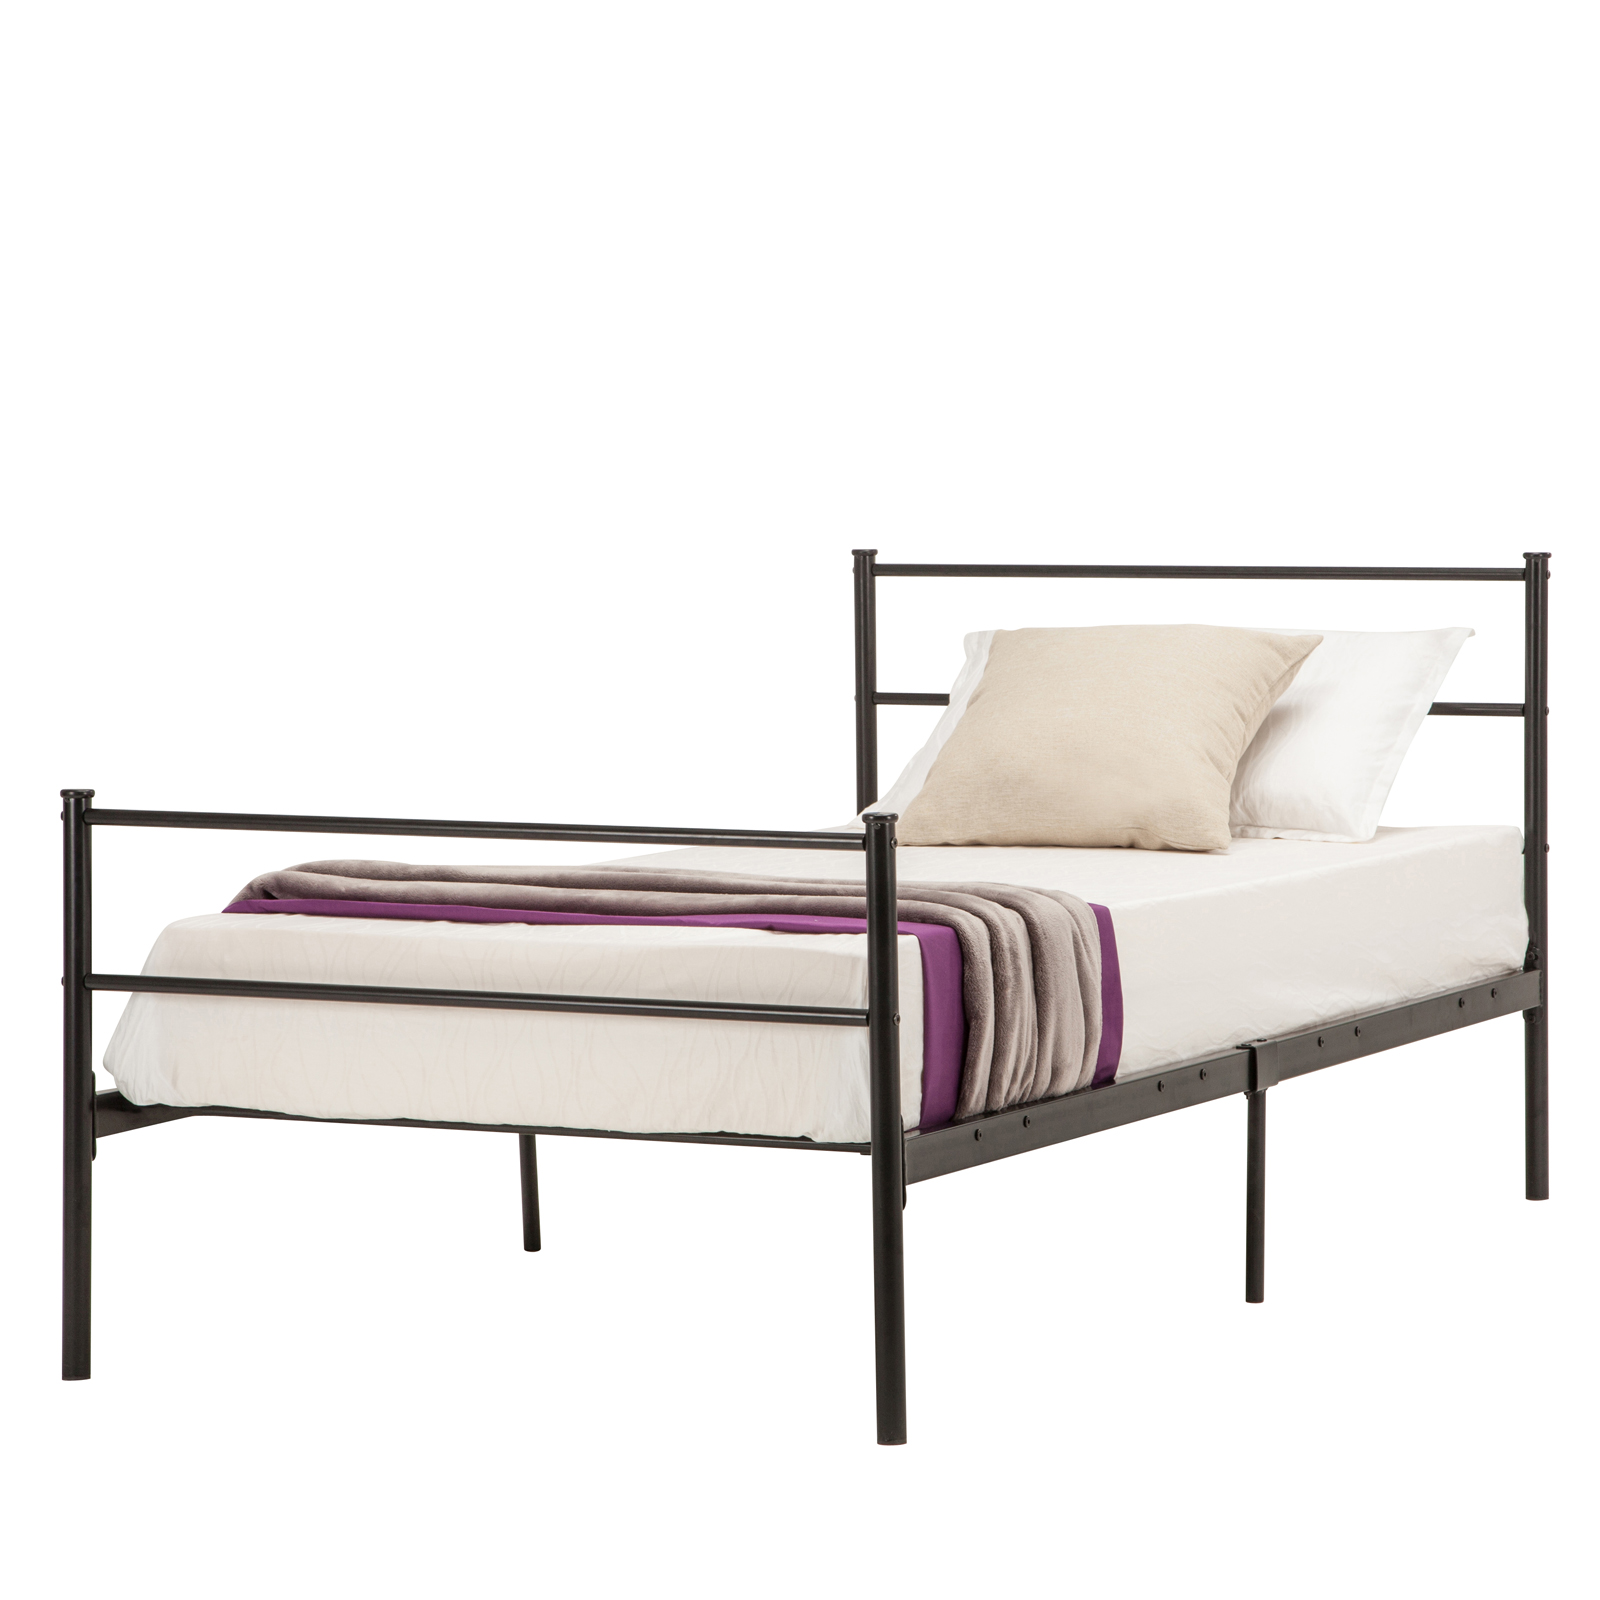 Queen Size Bed Mattress: Twin Full Queen Size Metal Bed Frame Platform Mattress